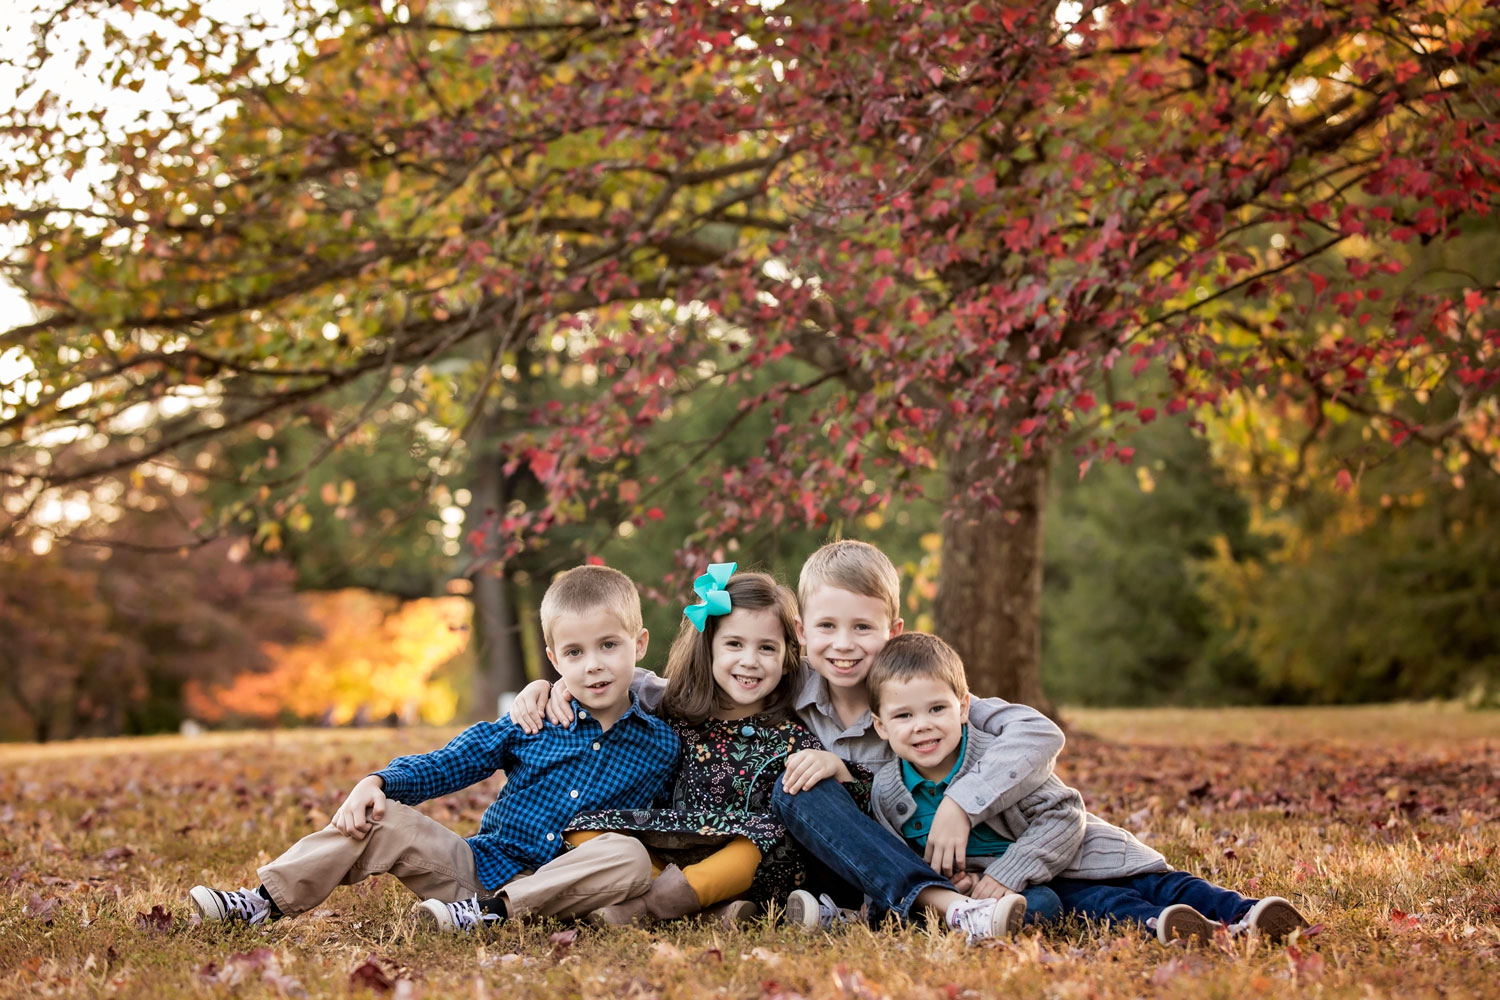 knoxville-family-photographer-four-siblings-hug.jpg